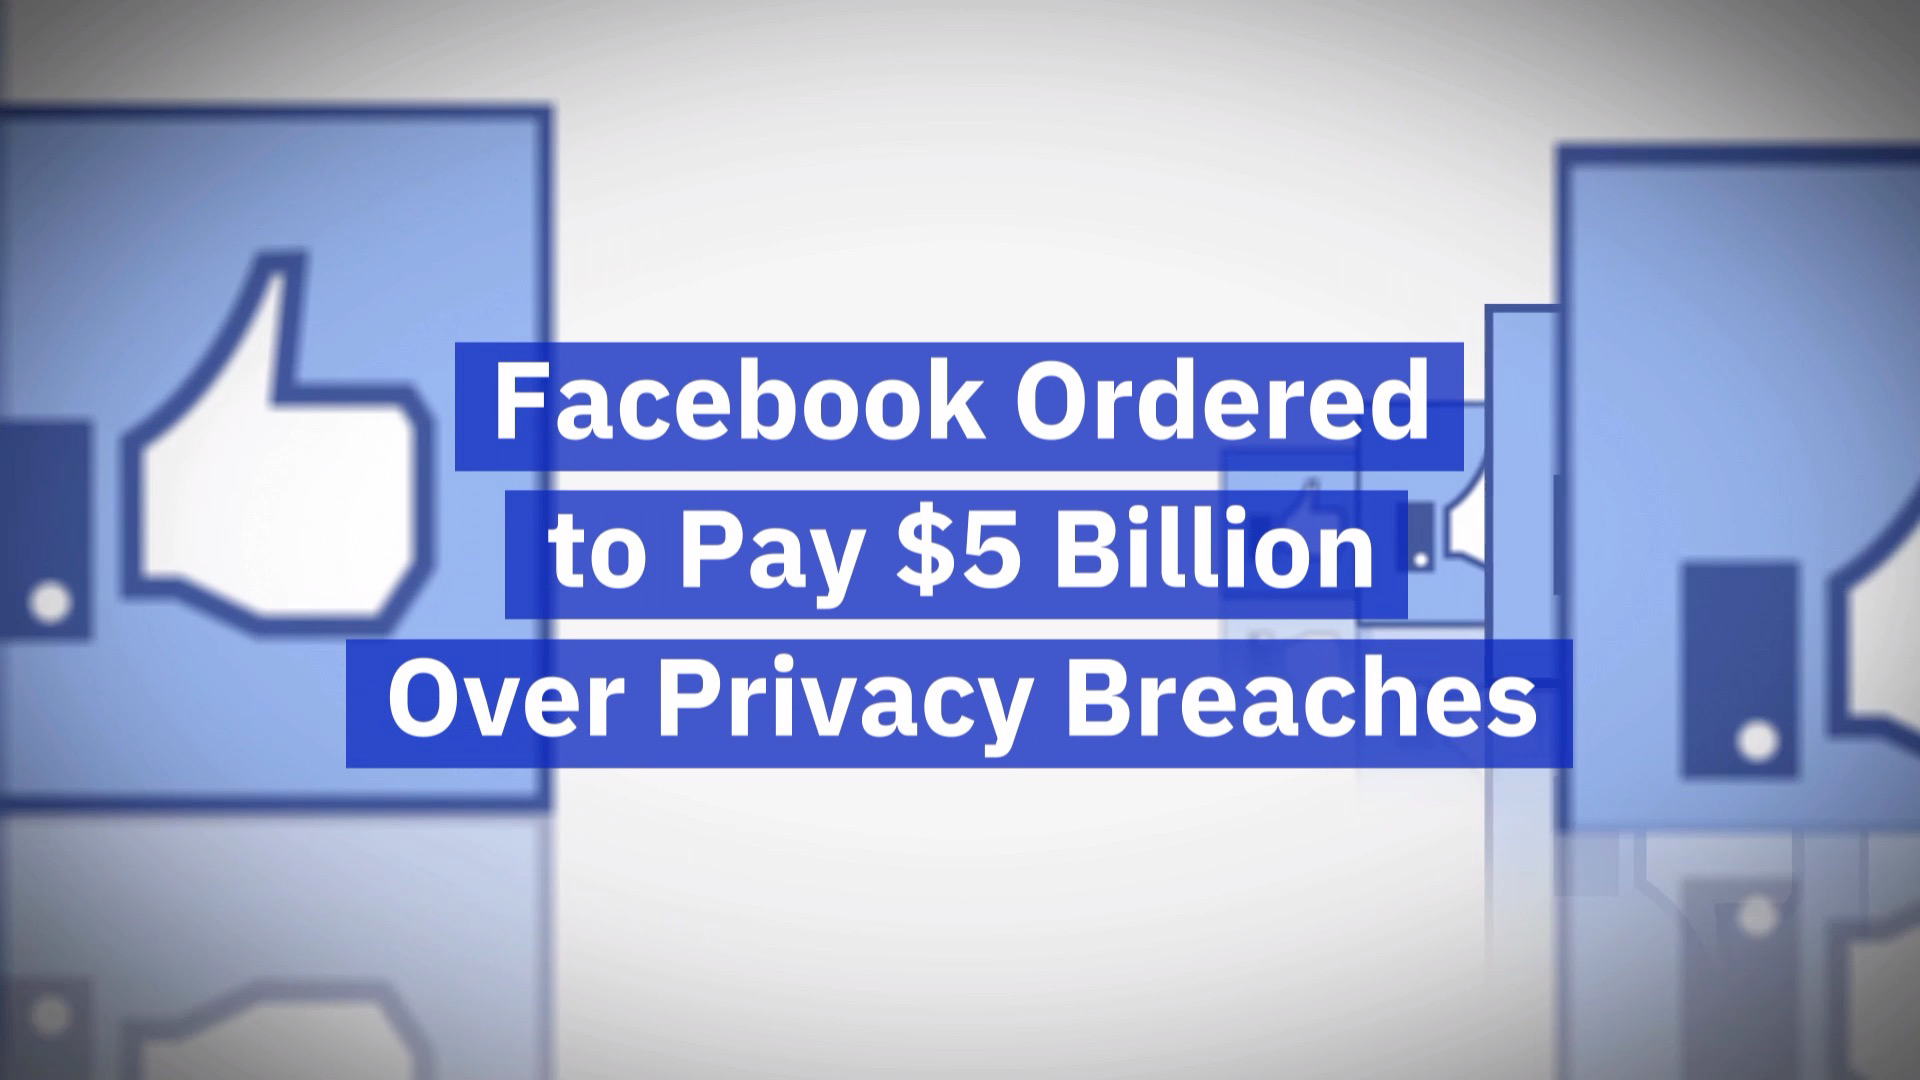 Facebook's Privacy Breach Is Going To Cost Them Billions